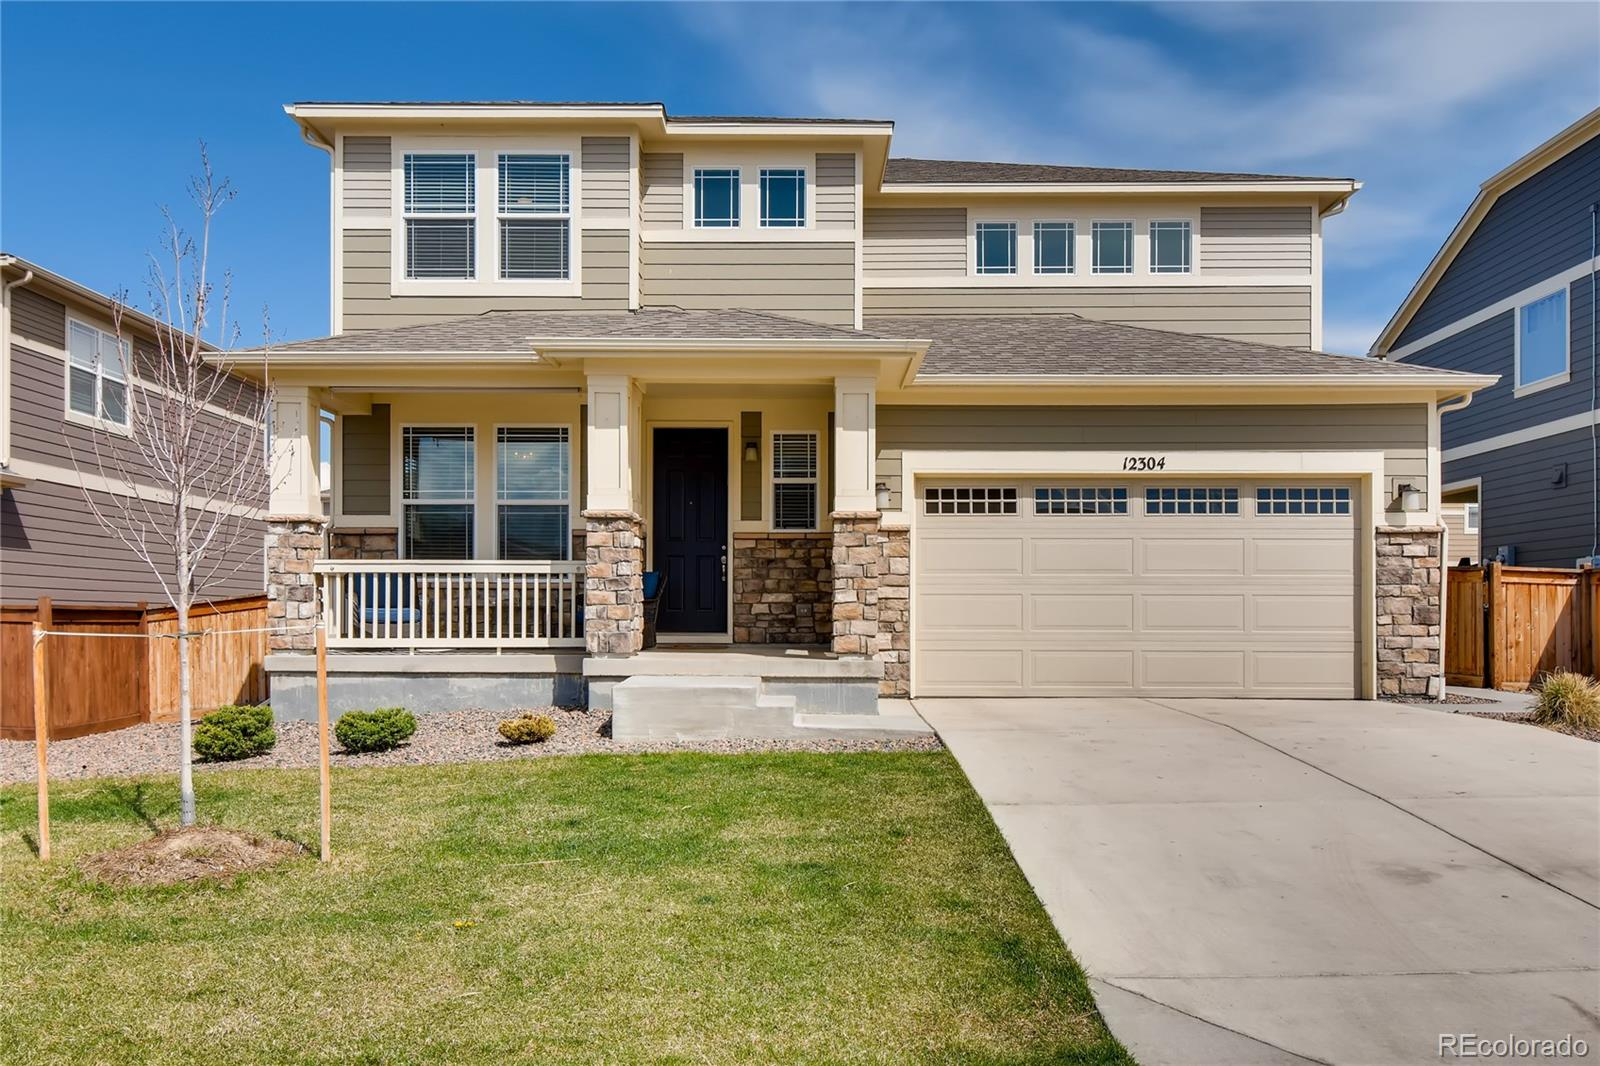 12304 Olive Way Property Photo - Thornton, CO real estate listing